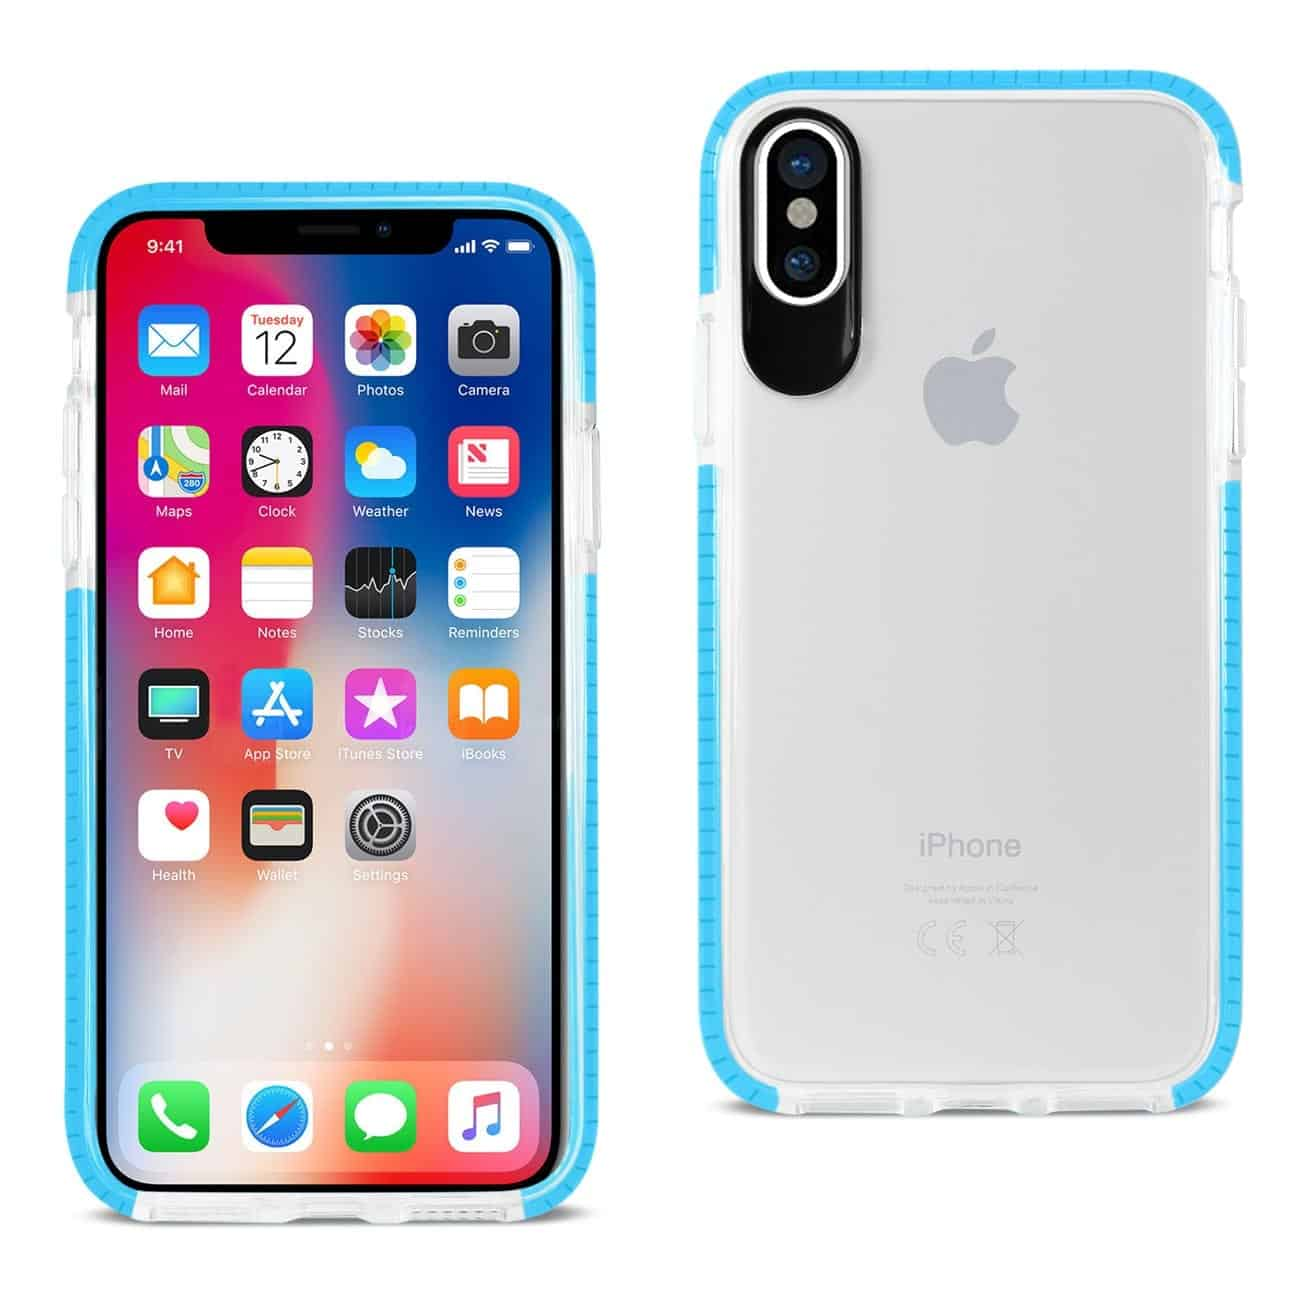 IPHONE X SOFT TRANSPARENT TPU CASE IN CLEAR BLUE